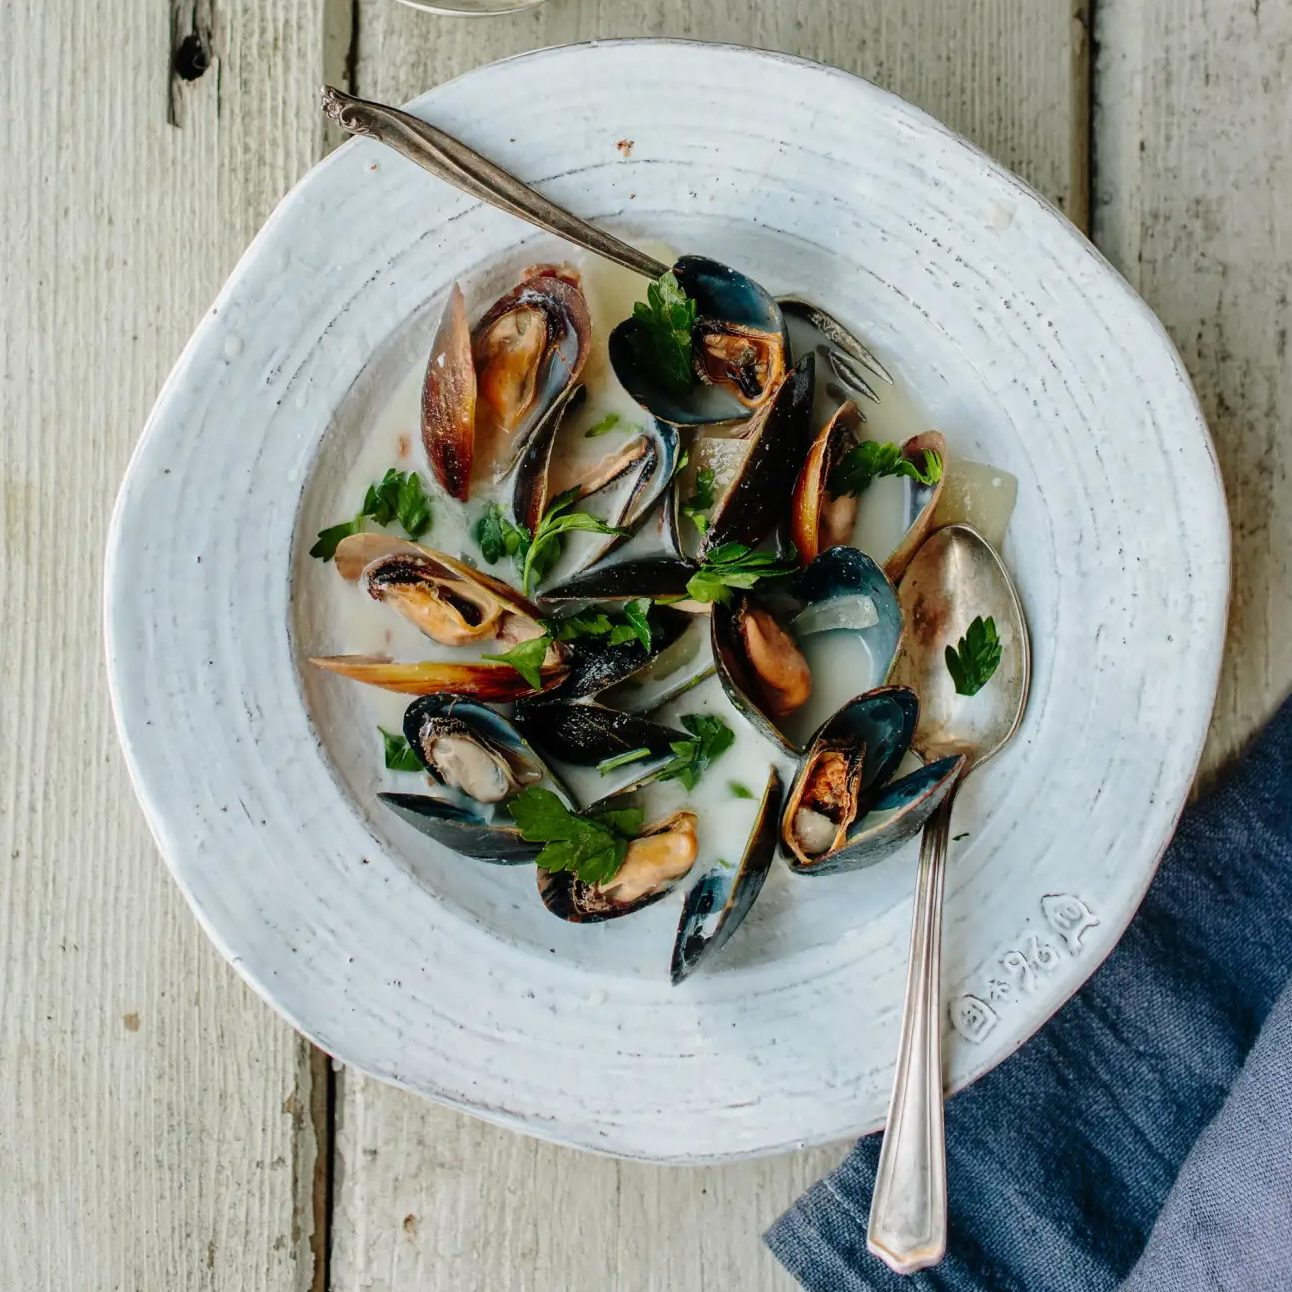 Donal Skehan's Mussels in Irish Cider